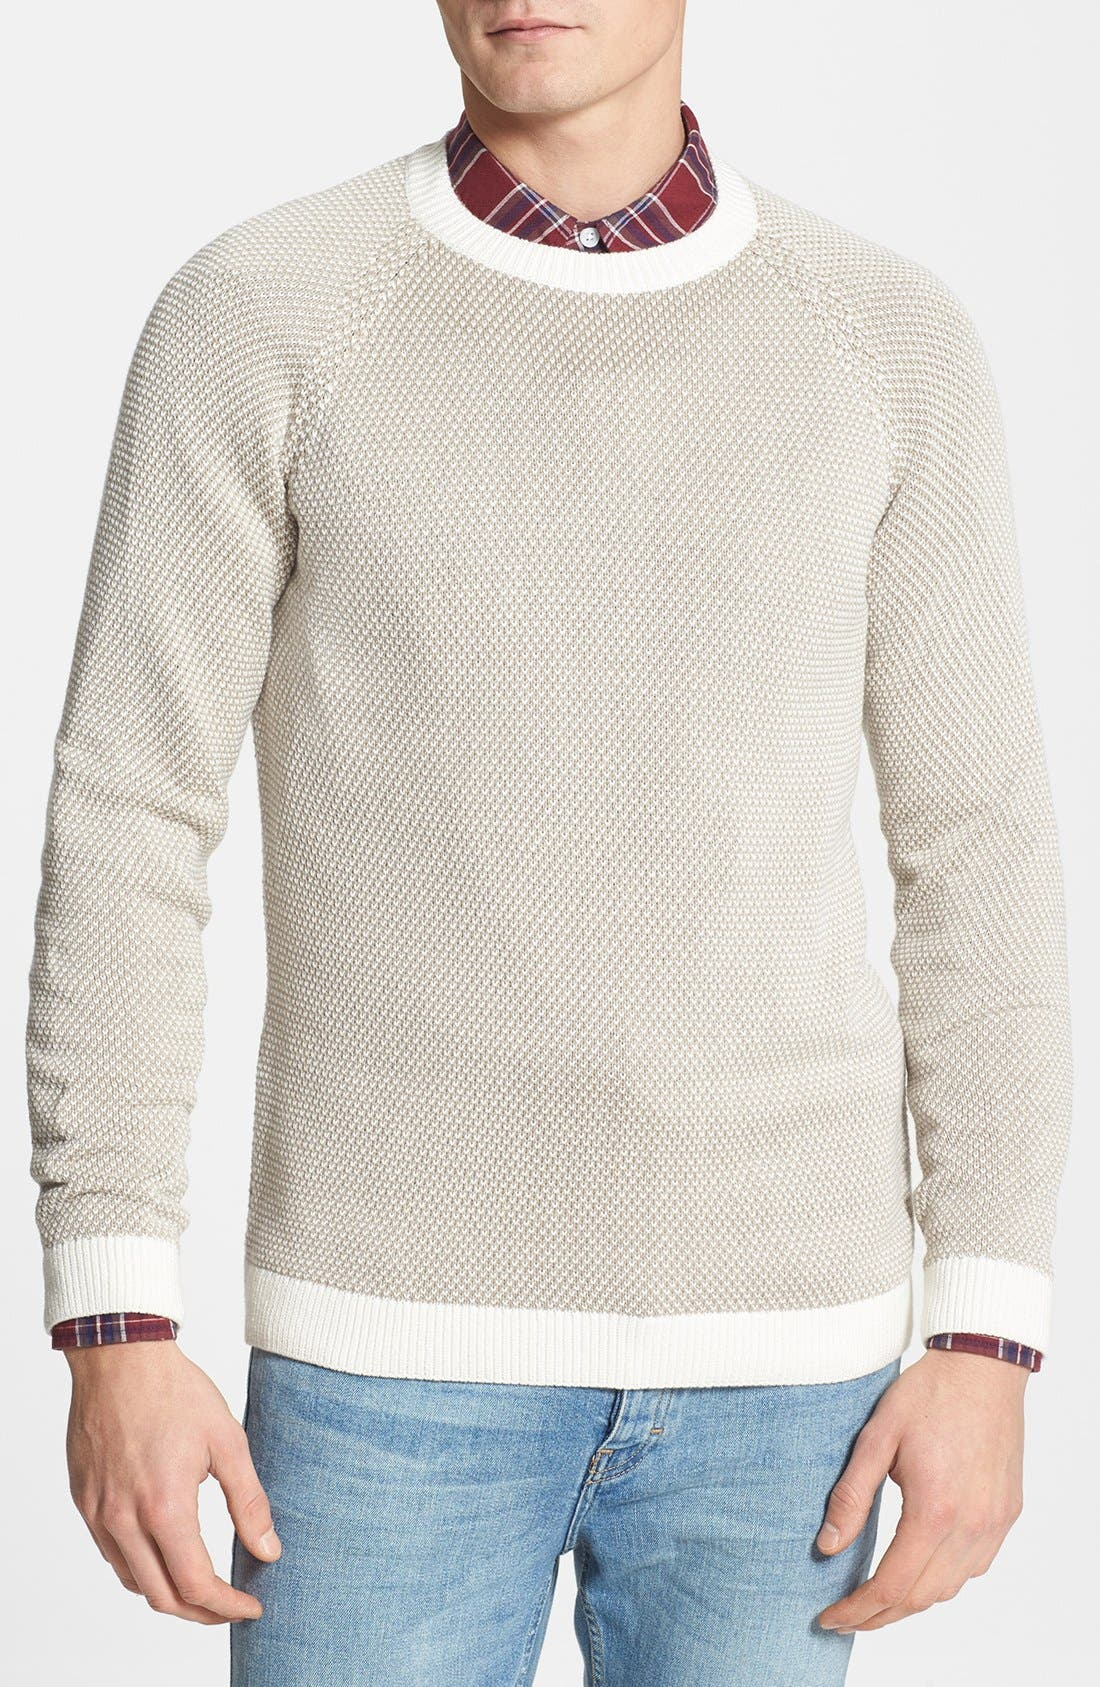 Main Image - Topman Reverse Knit Crewneck Sweater